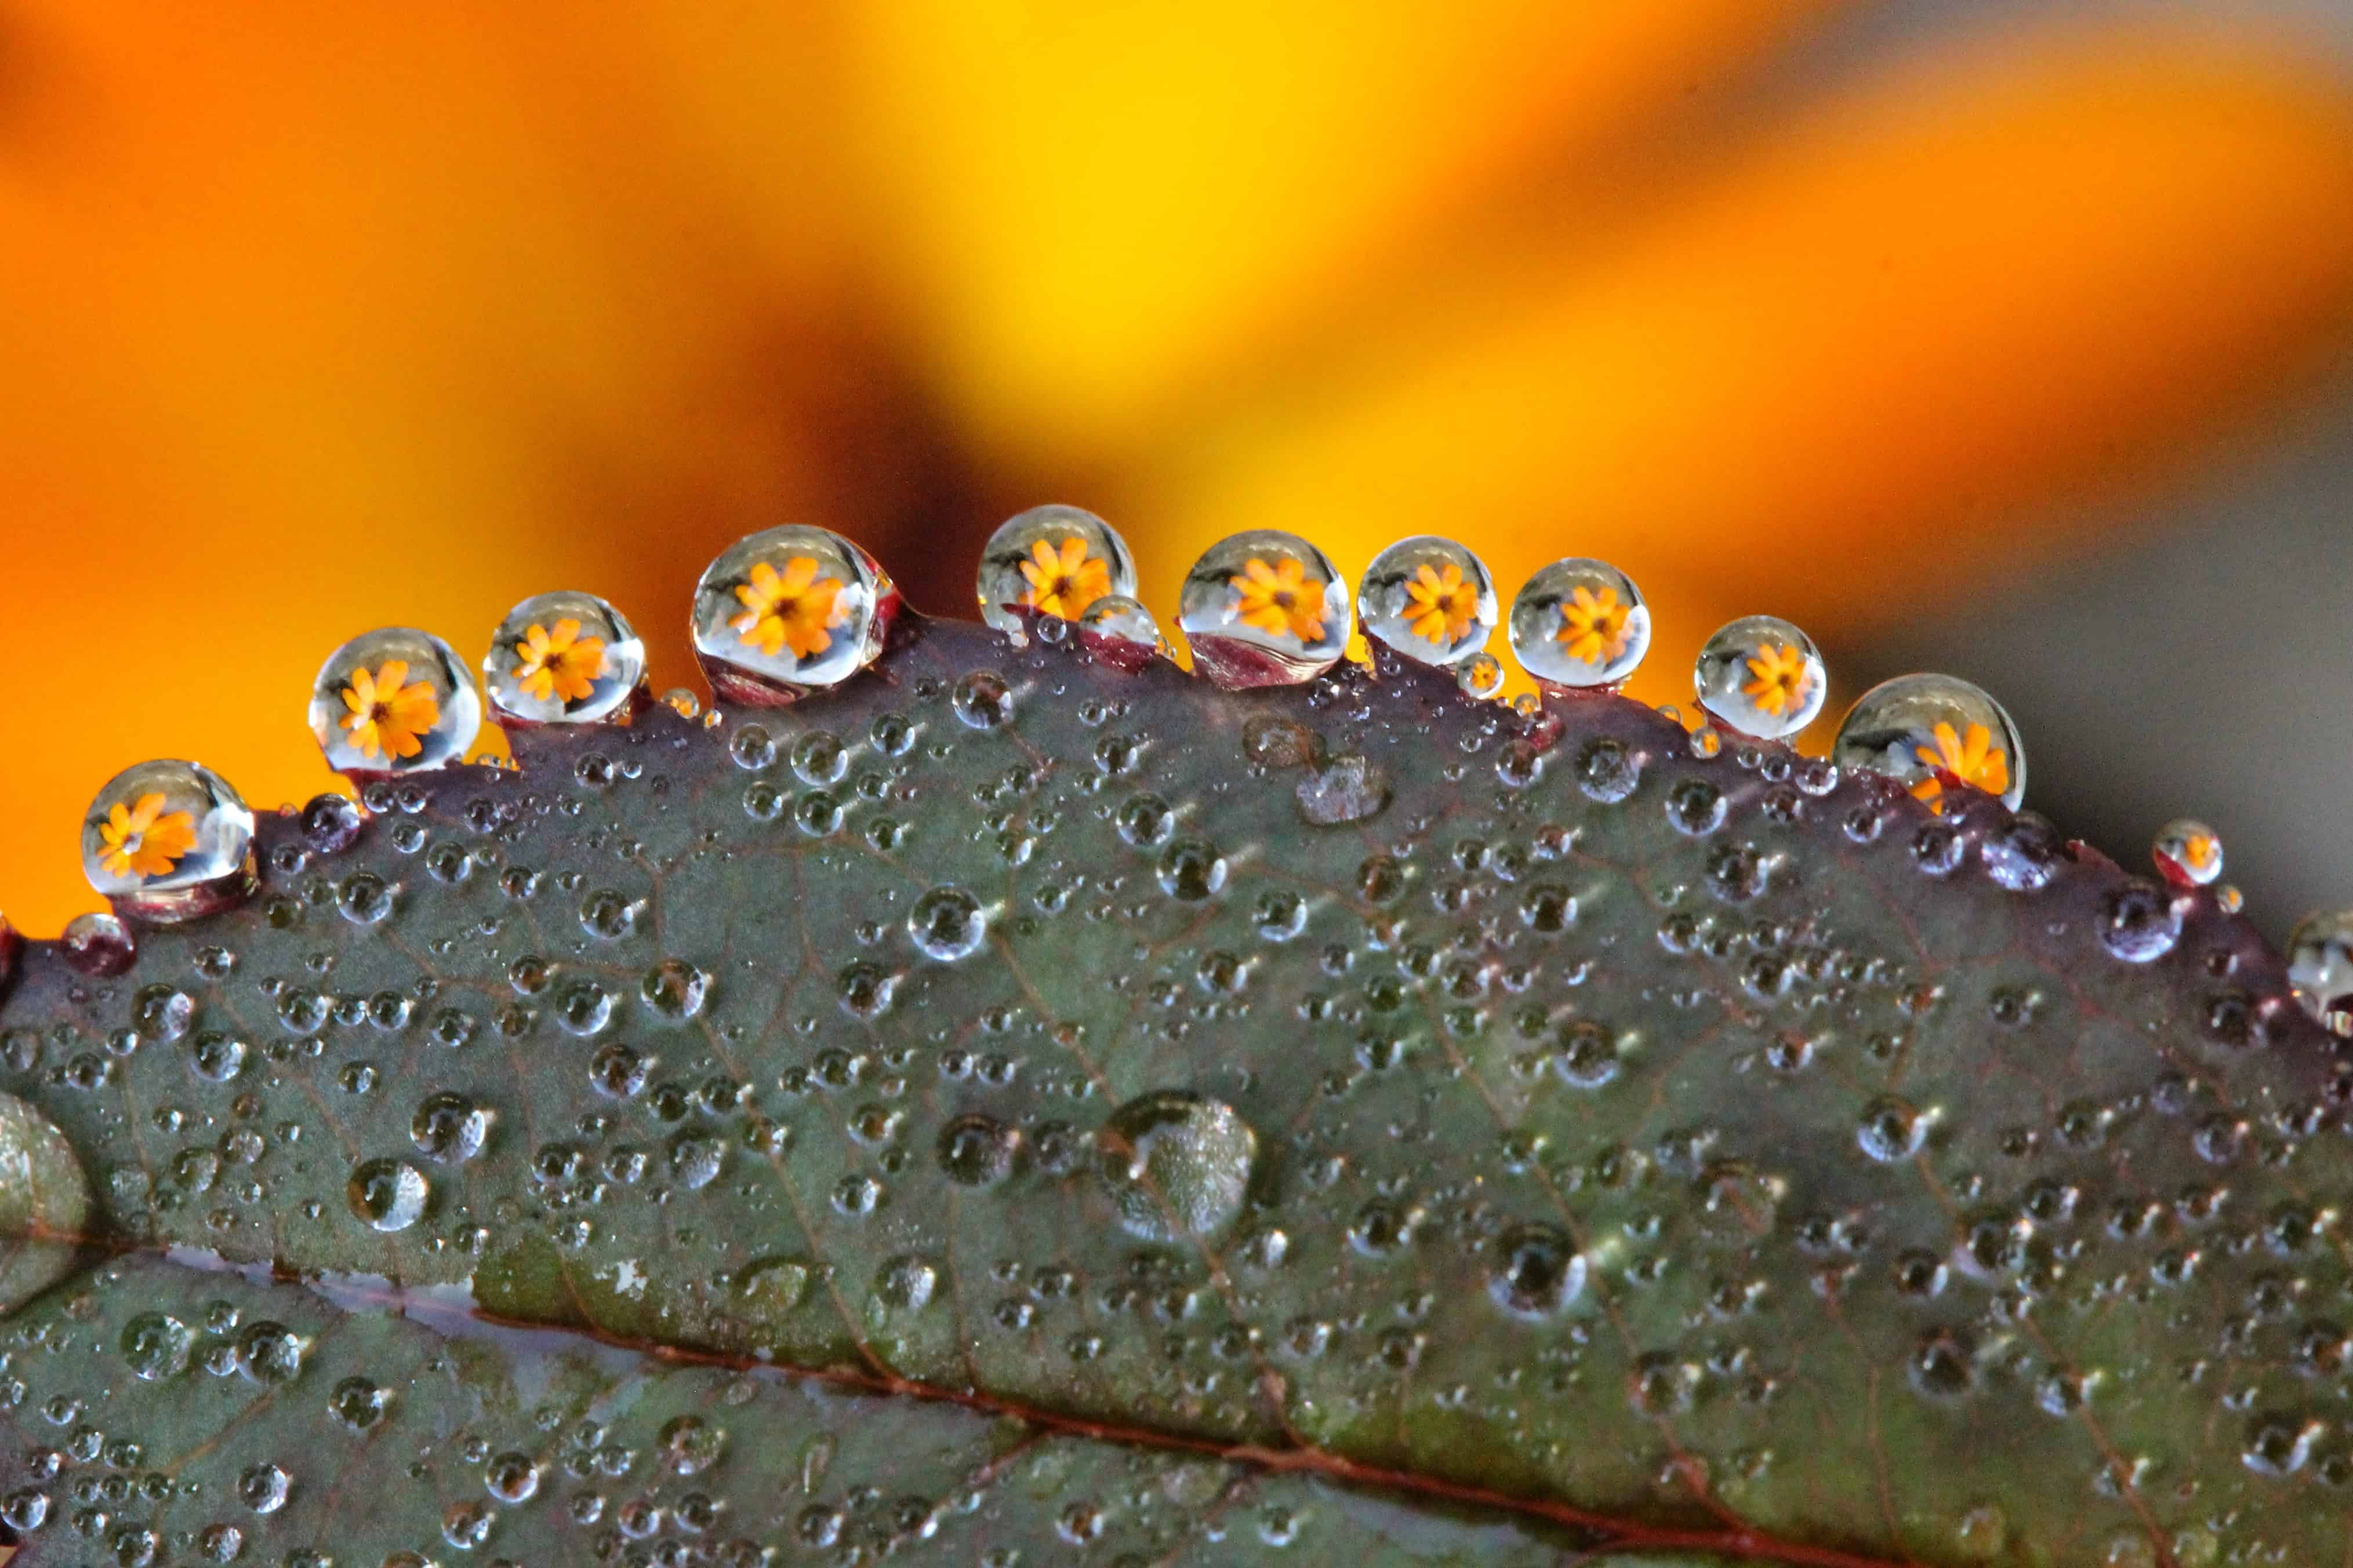 free picture  droplet  rain  water  wet  dew  moisture